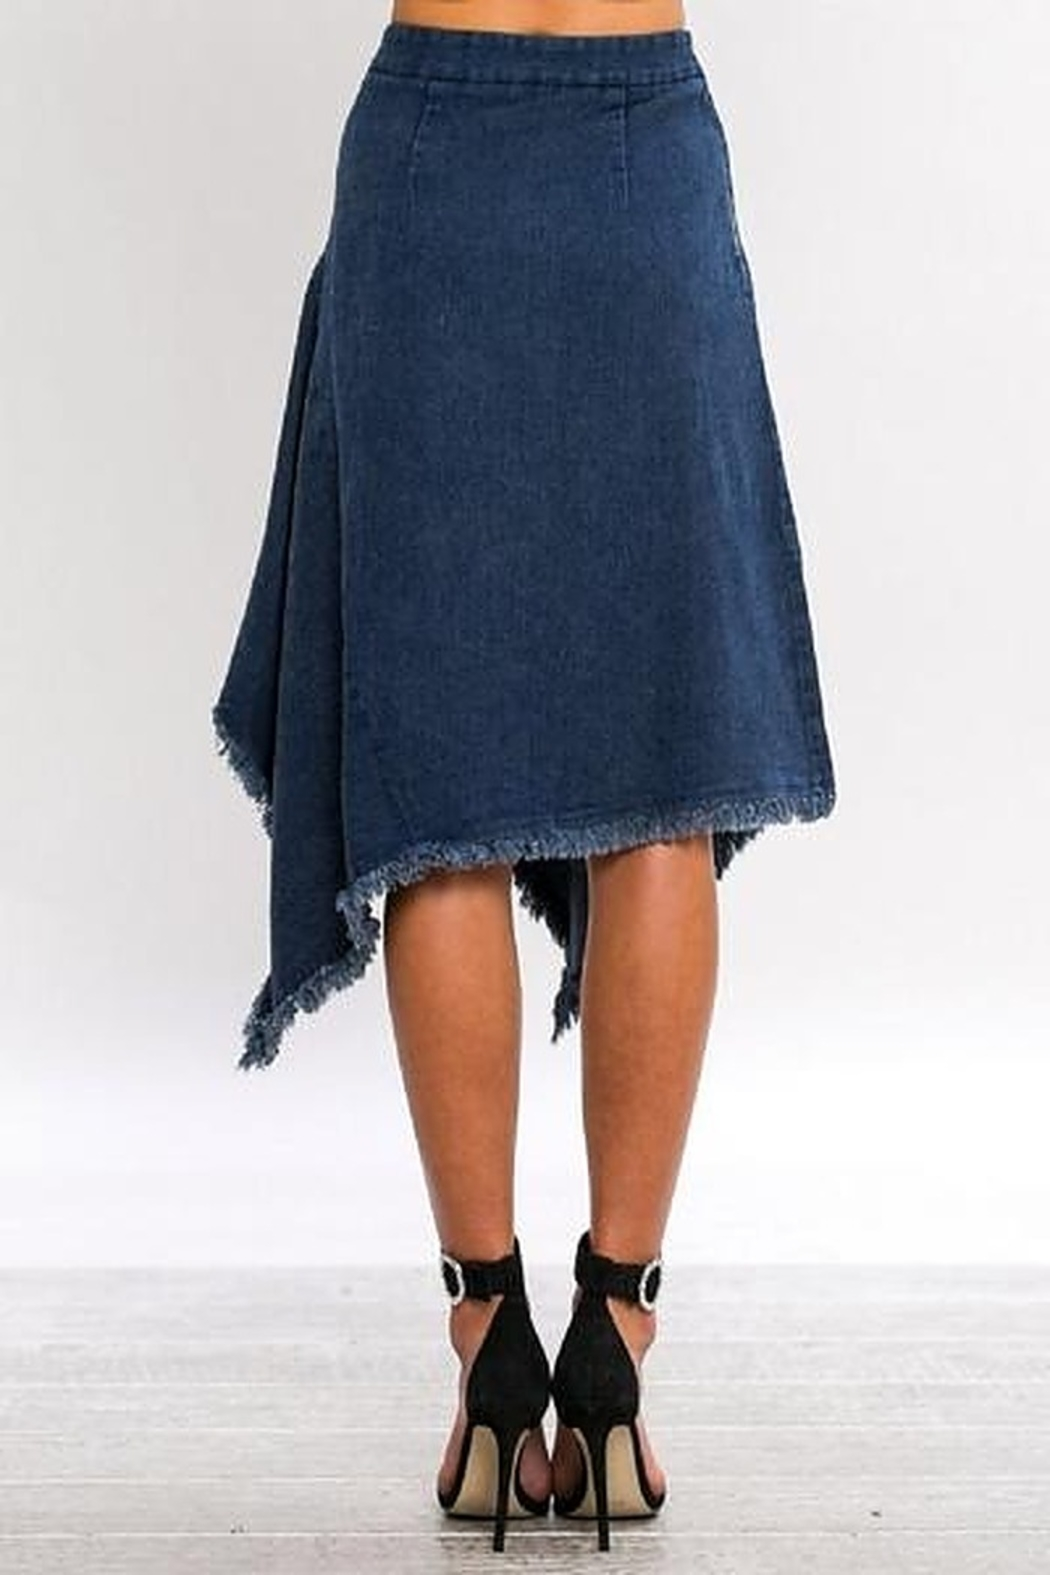 Jealous Tomato A-Line Asymmetrical Denim Skirt - Side Cropped Image